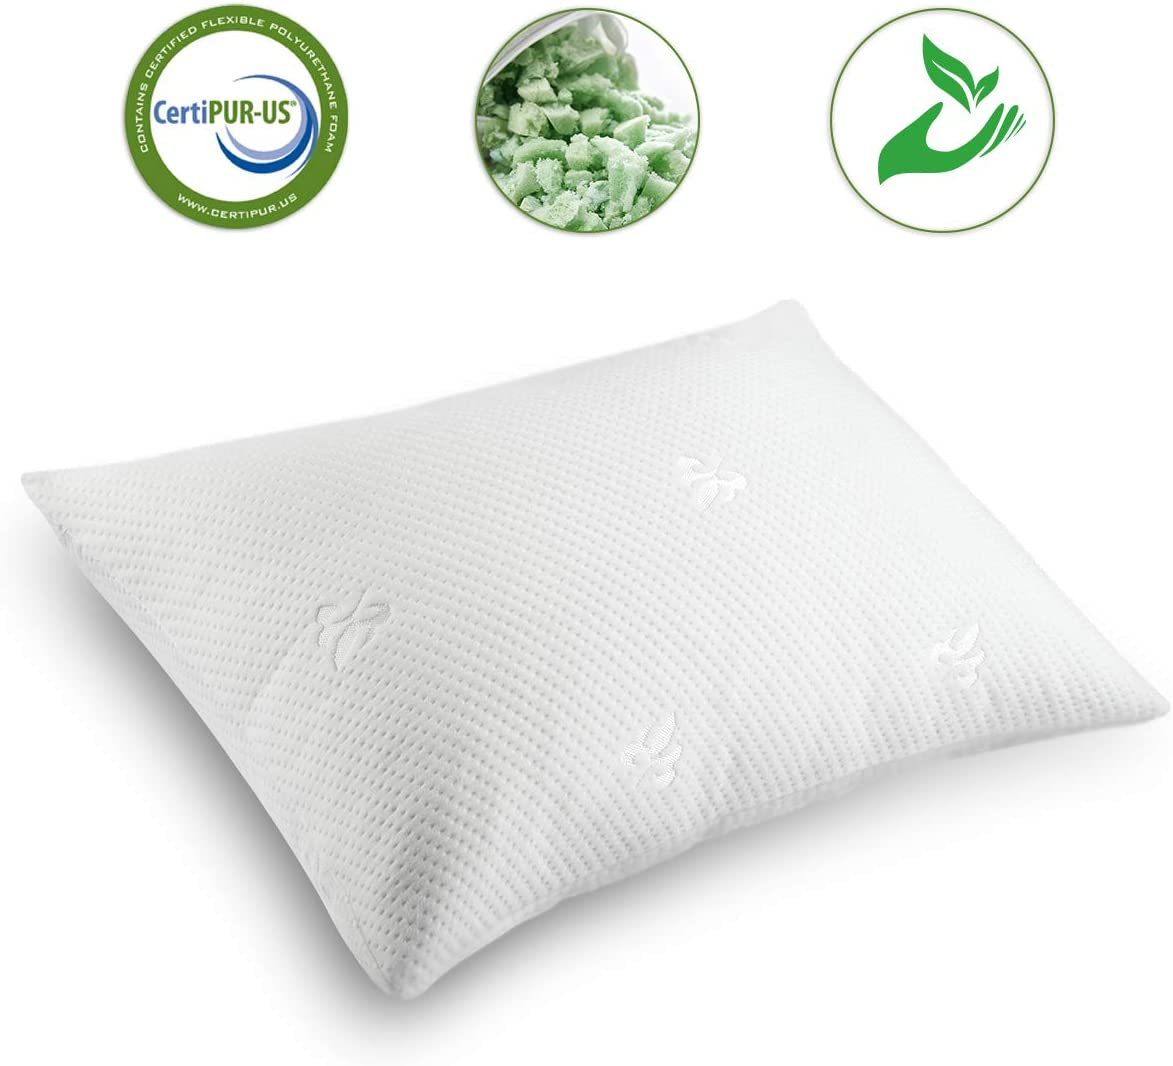 Cooling Bed Pillows for Sleeping Shredded Memory Foam Pillow Queen(20x30) with Washable Pillow Cover,Great Support and Fluffy